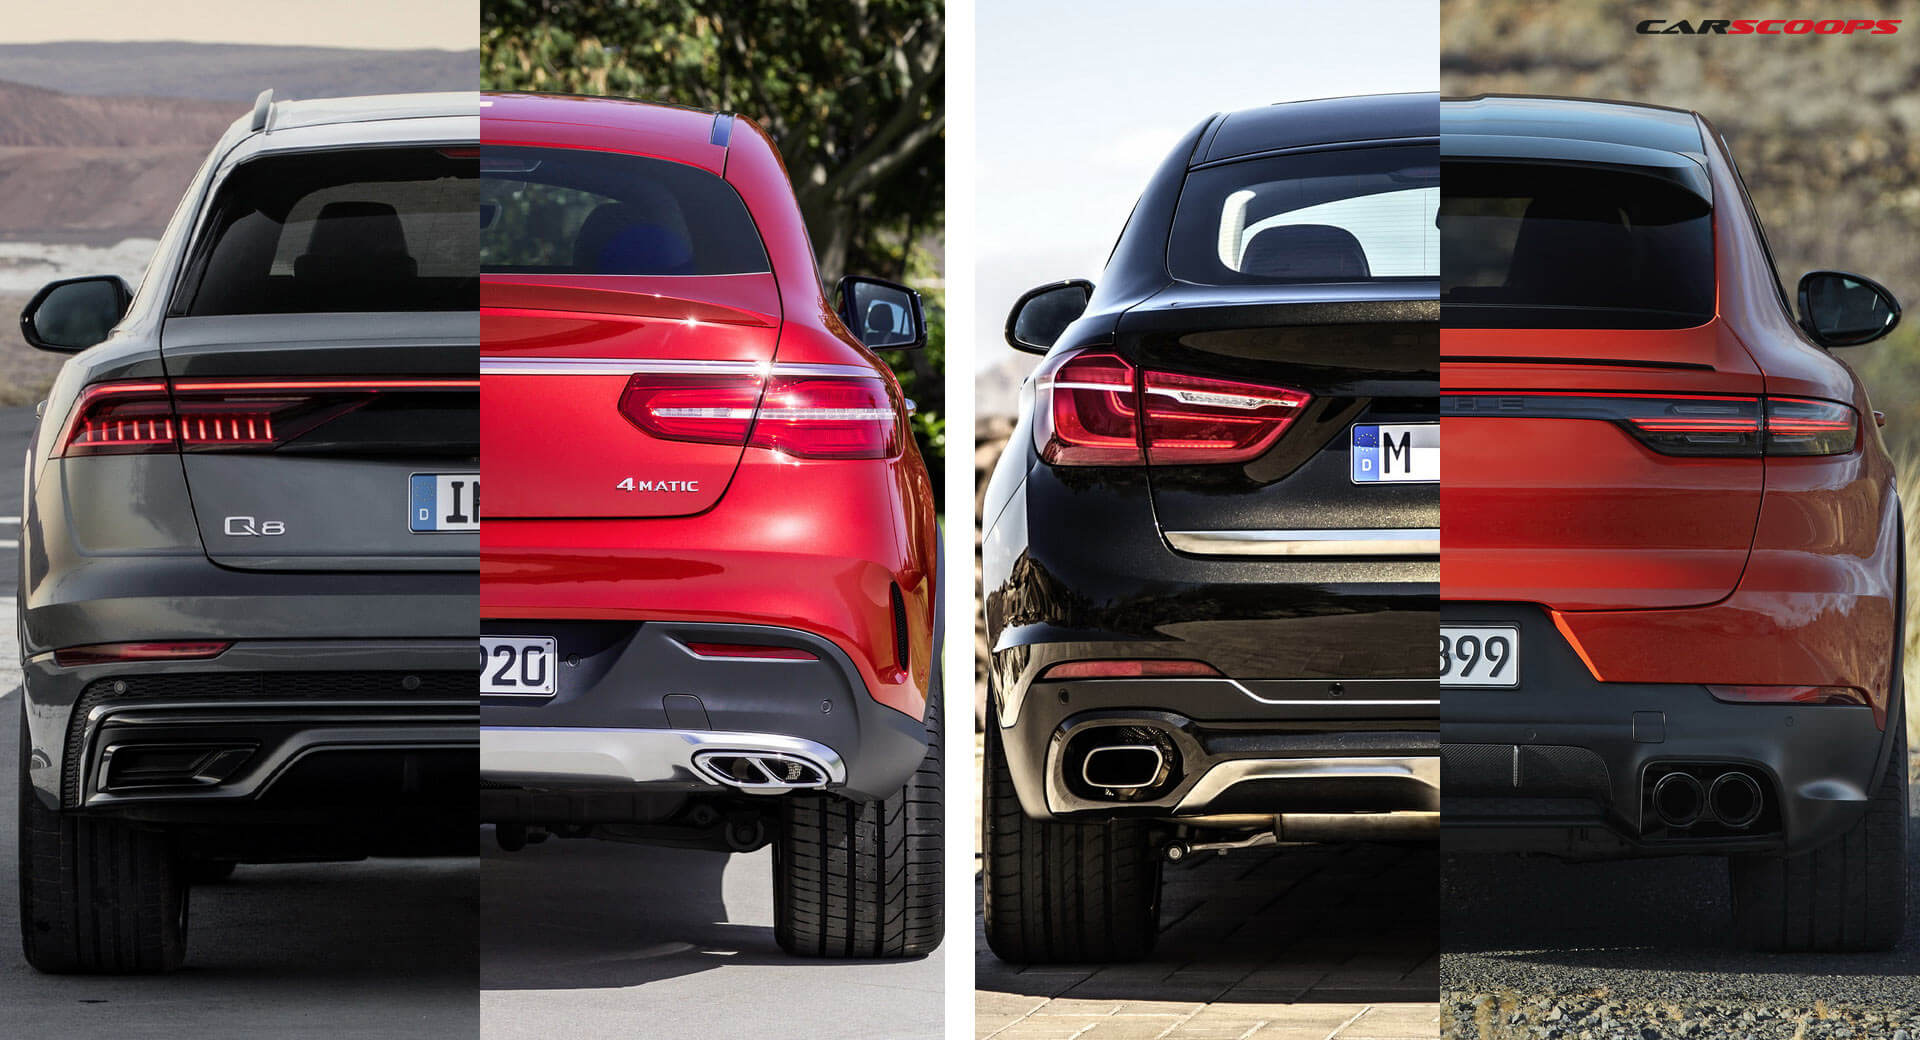 Porsche Cayenne Coupe Vs Bmw X6 Vs Mercedes Gle Coupe Vs